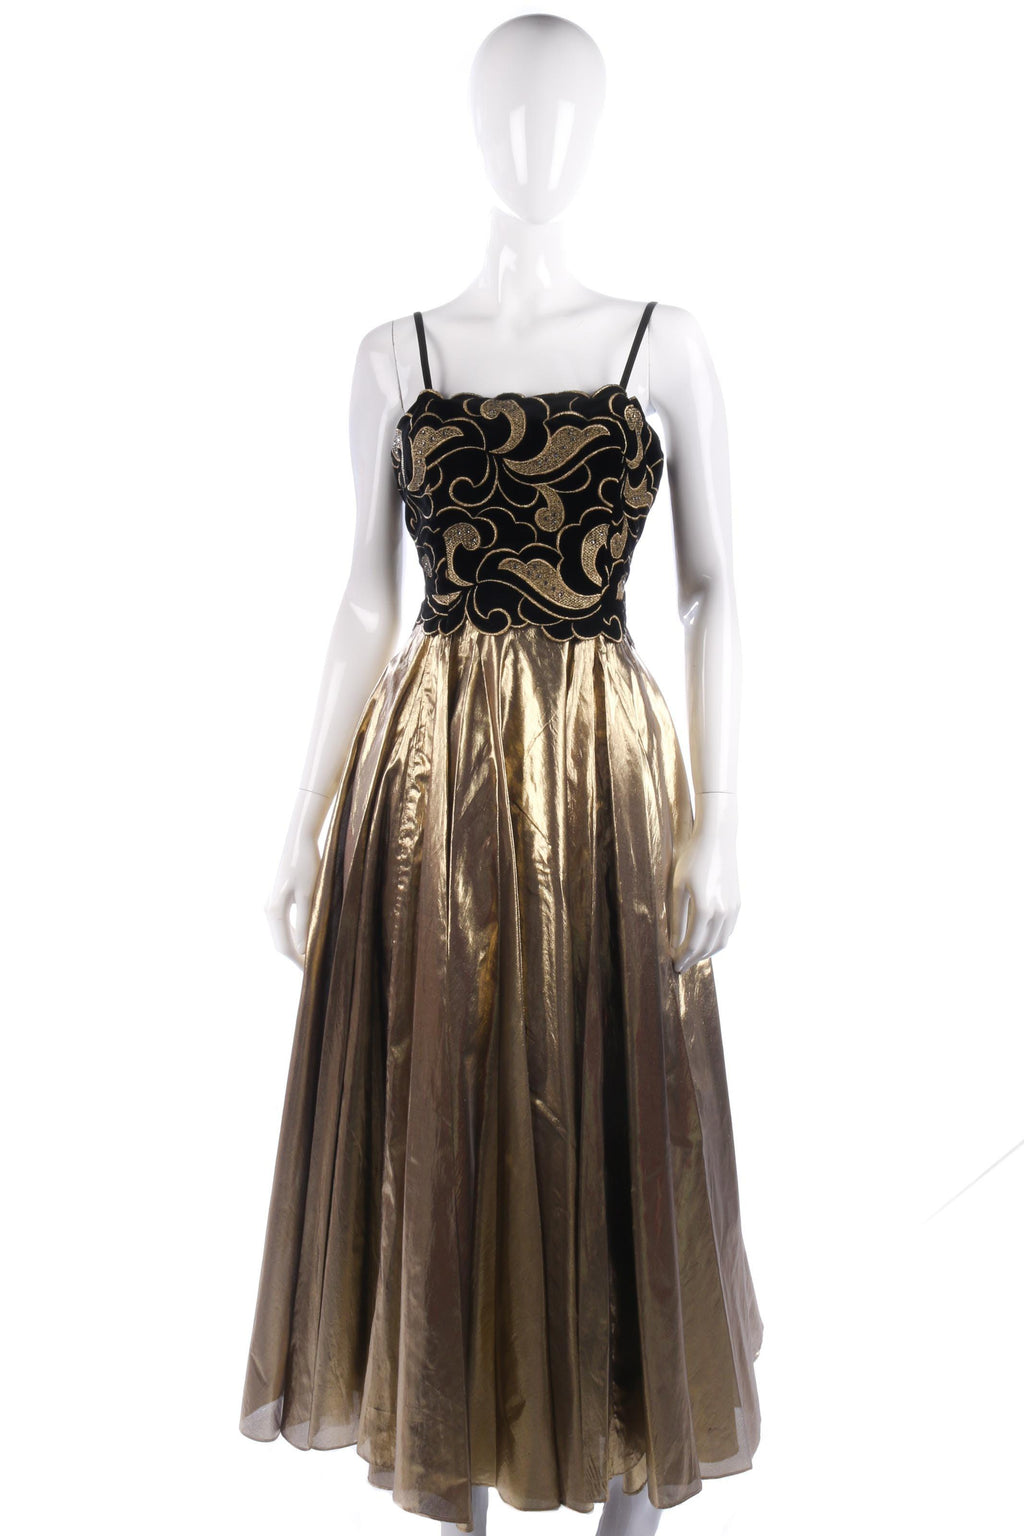 La Regina vintage ball gown. Superb size 12/14